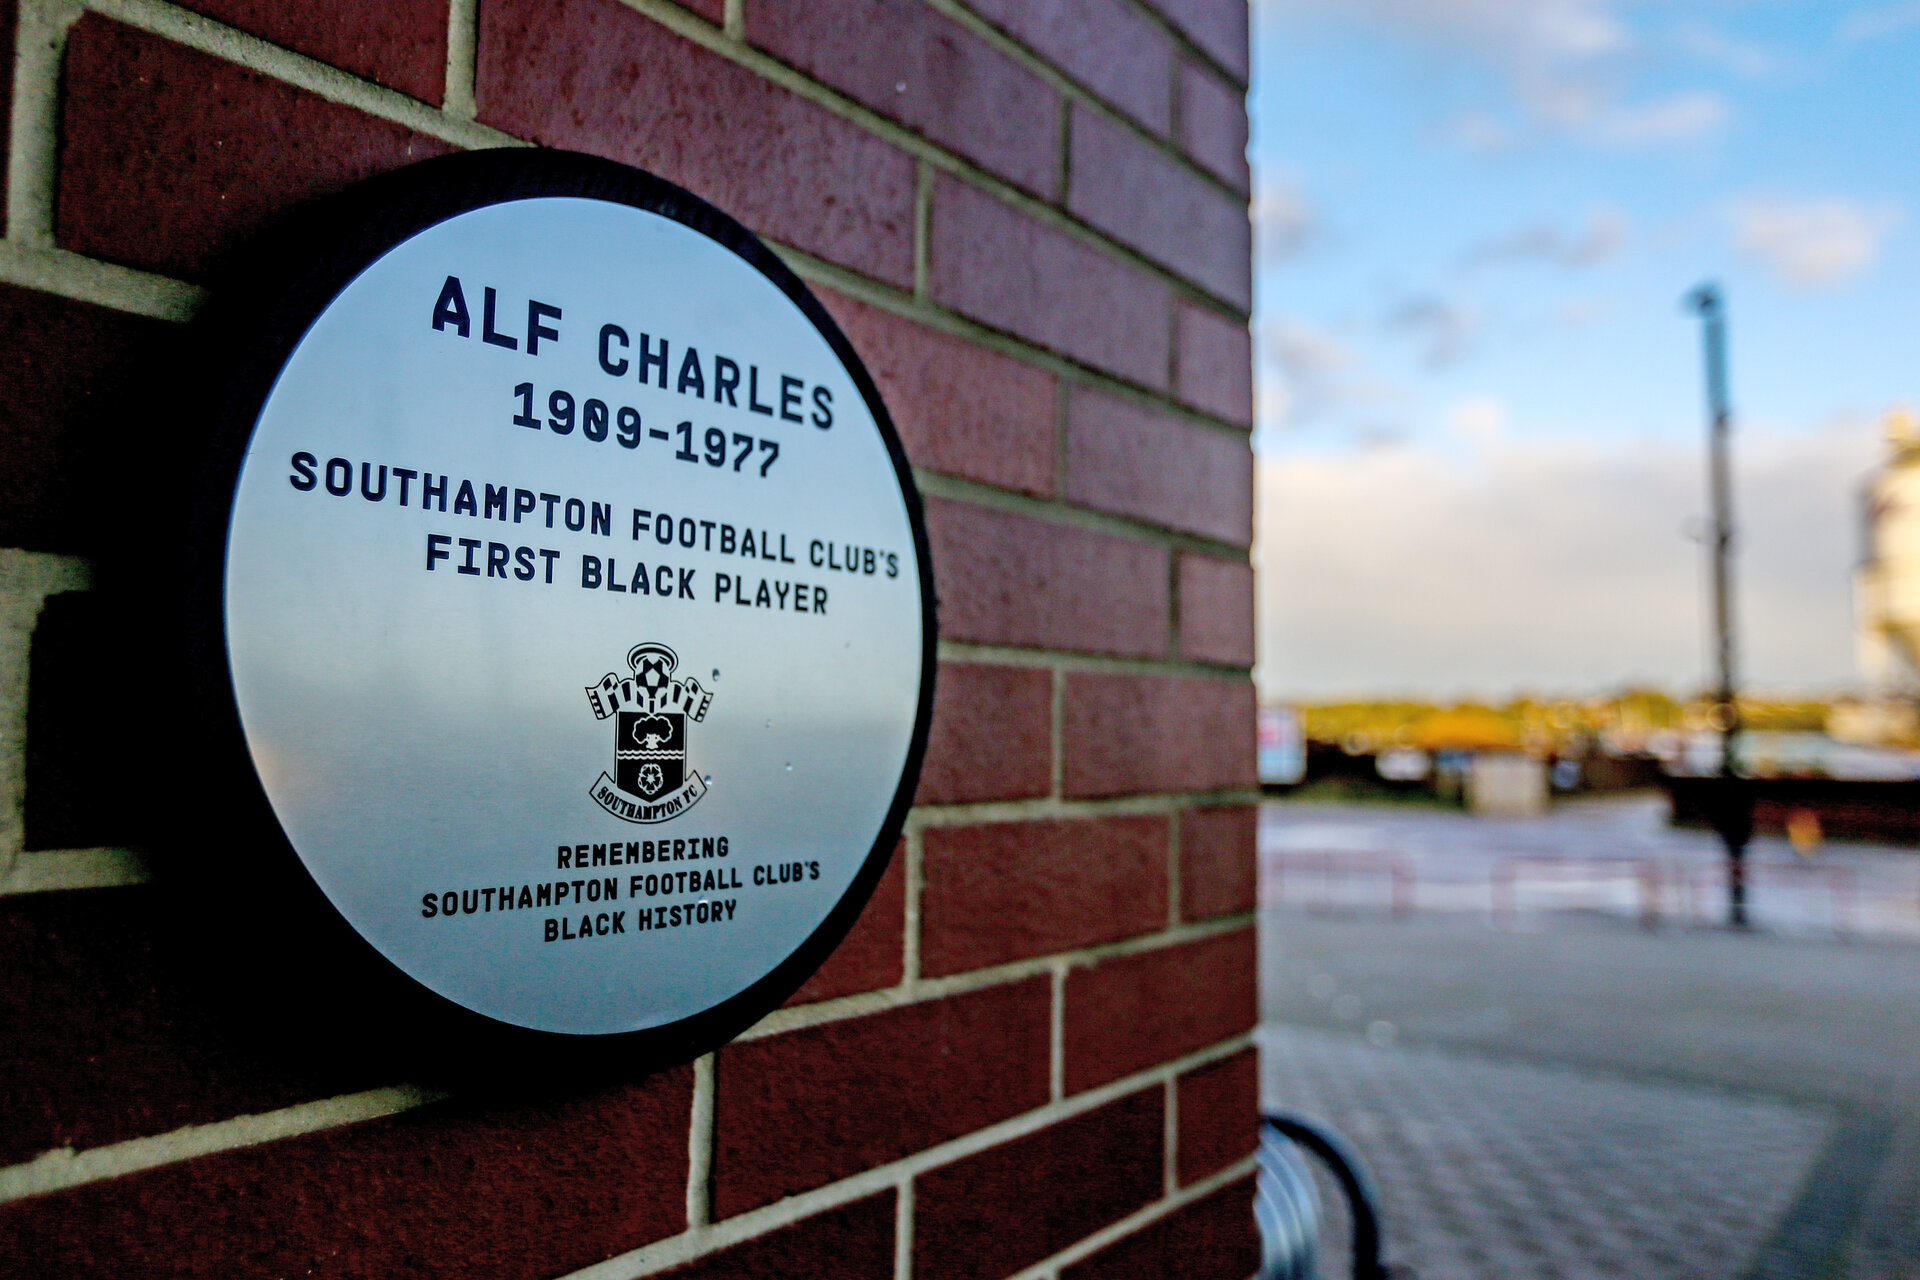 SOUTHAMPTON, ENGLAND, OCTOBER 27, A plaque is installed at Southampton FC's St Mary's stadium, in memory of Alf Charles, Southampton's first black player and to recognise the club's black history, in Southampton on October 27th 2020, pic by Matt Watson/Southampton FC